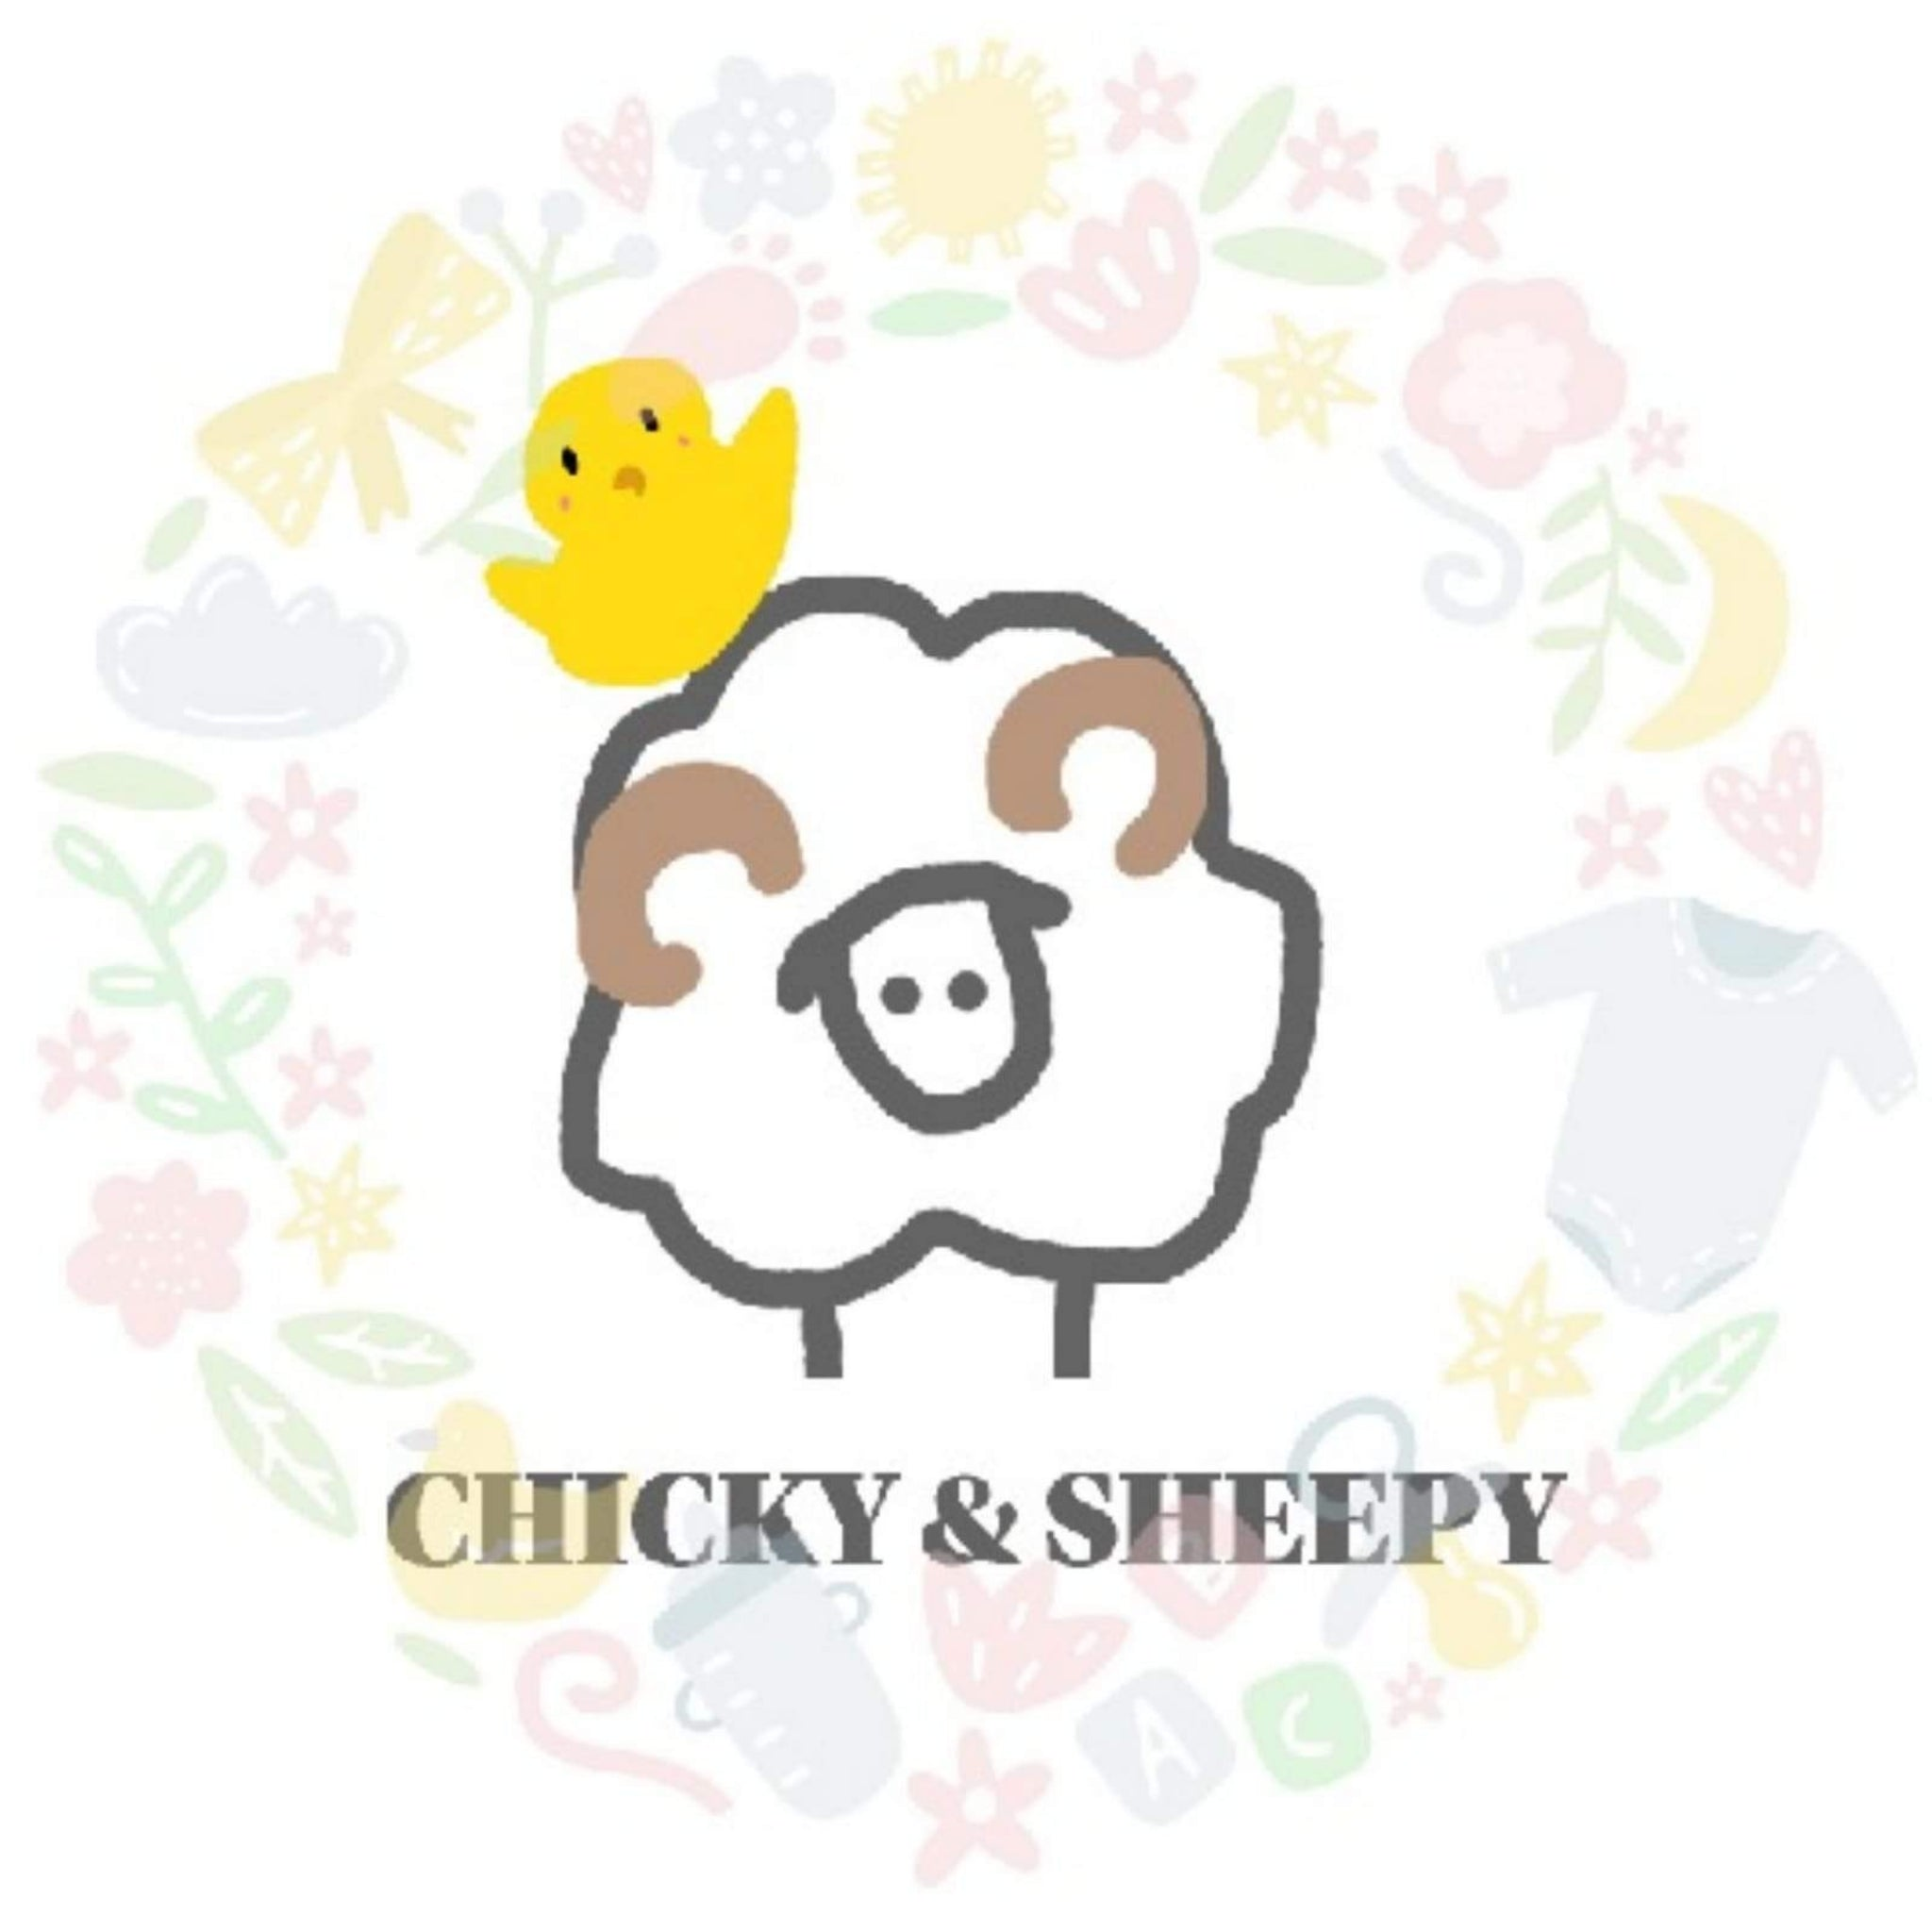 Chicky & Sheepy